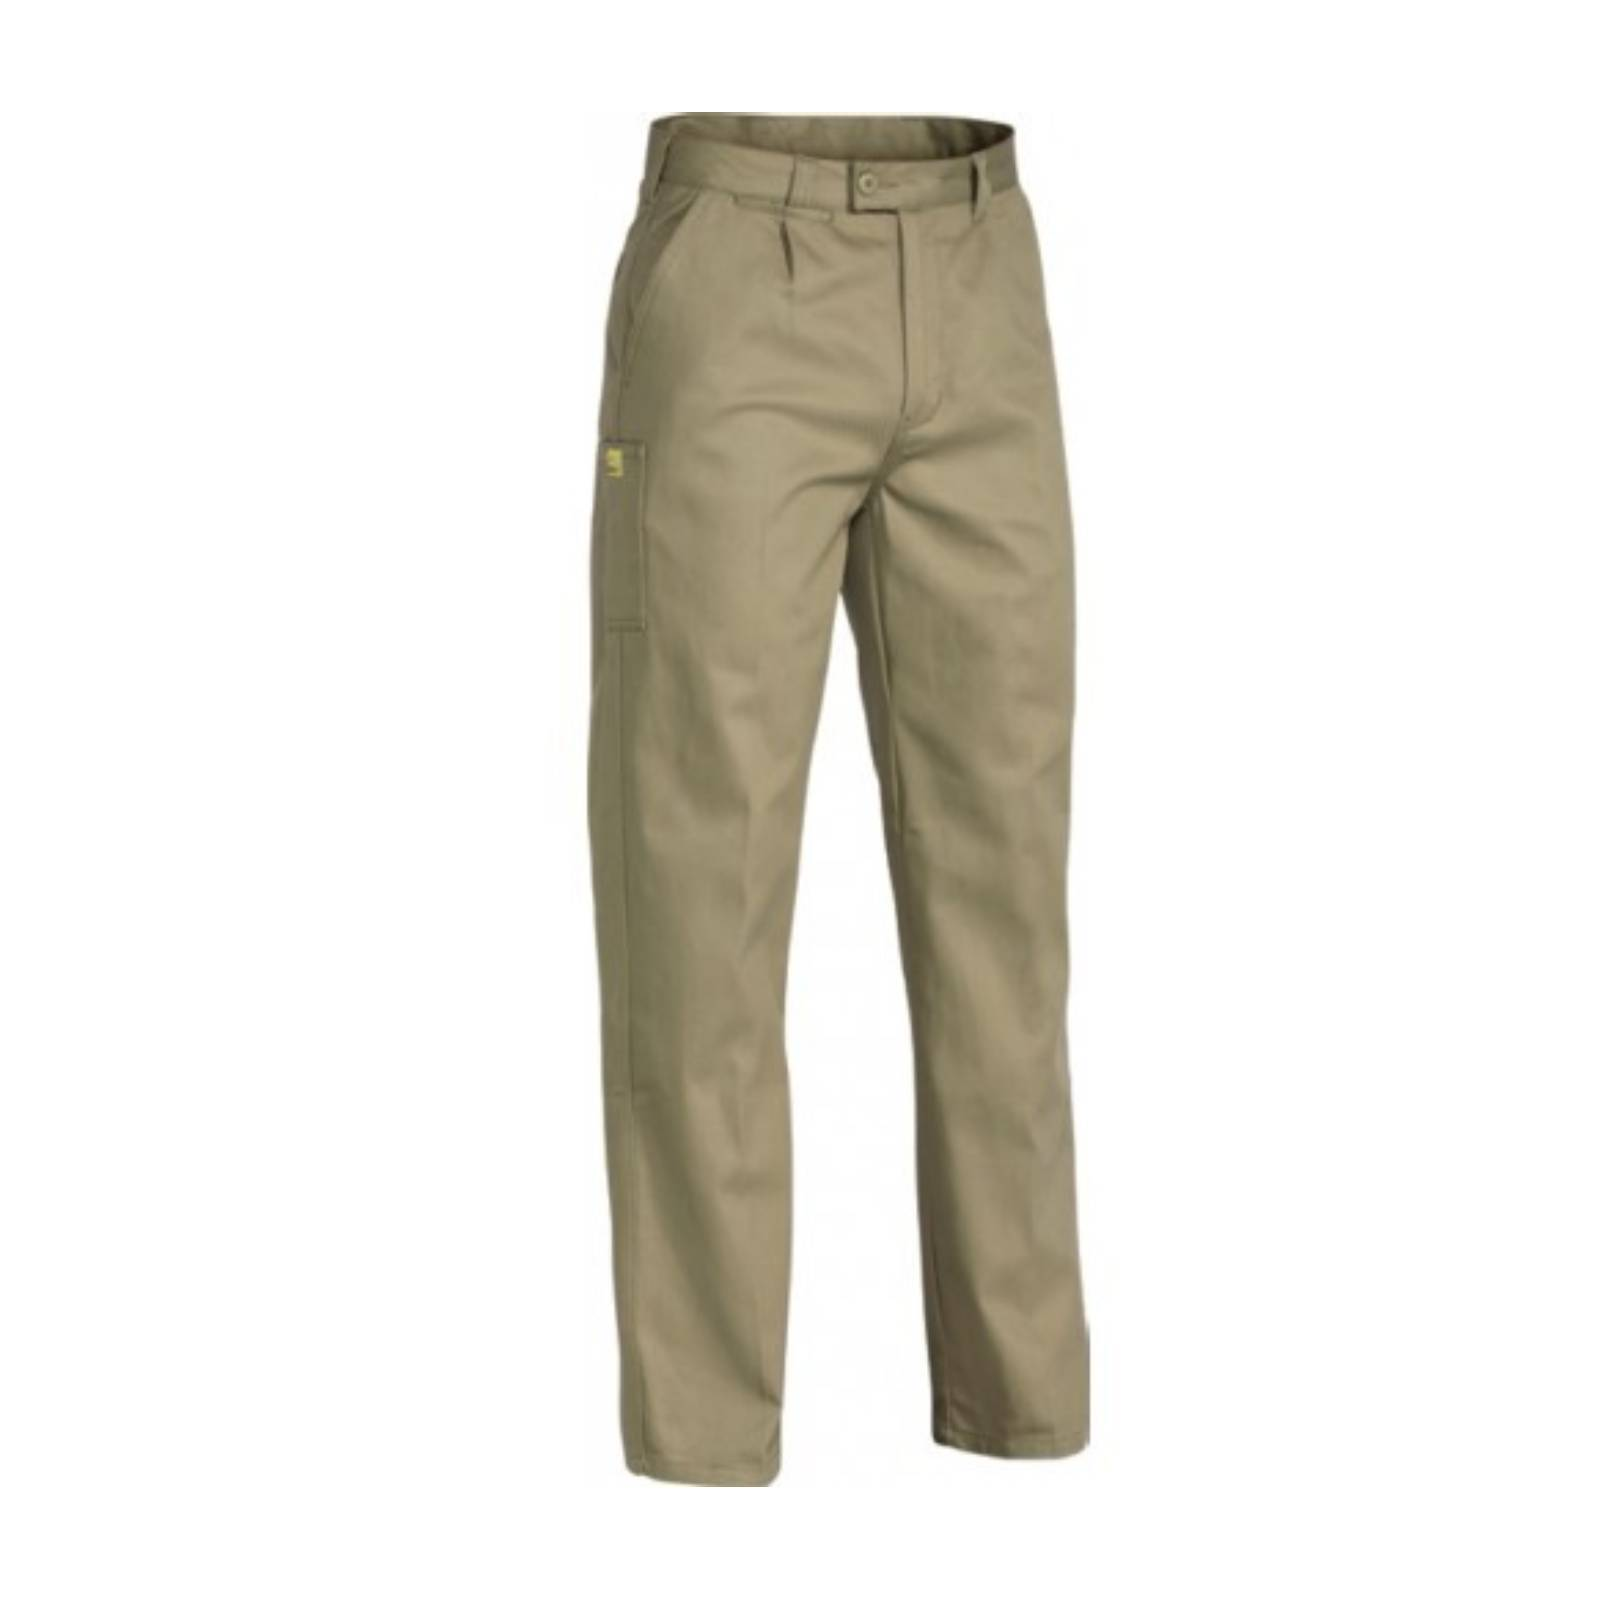 Bisley Men S Insect Protection Drill Work Pants Trousers Khaki